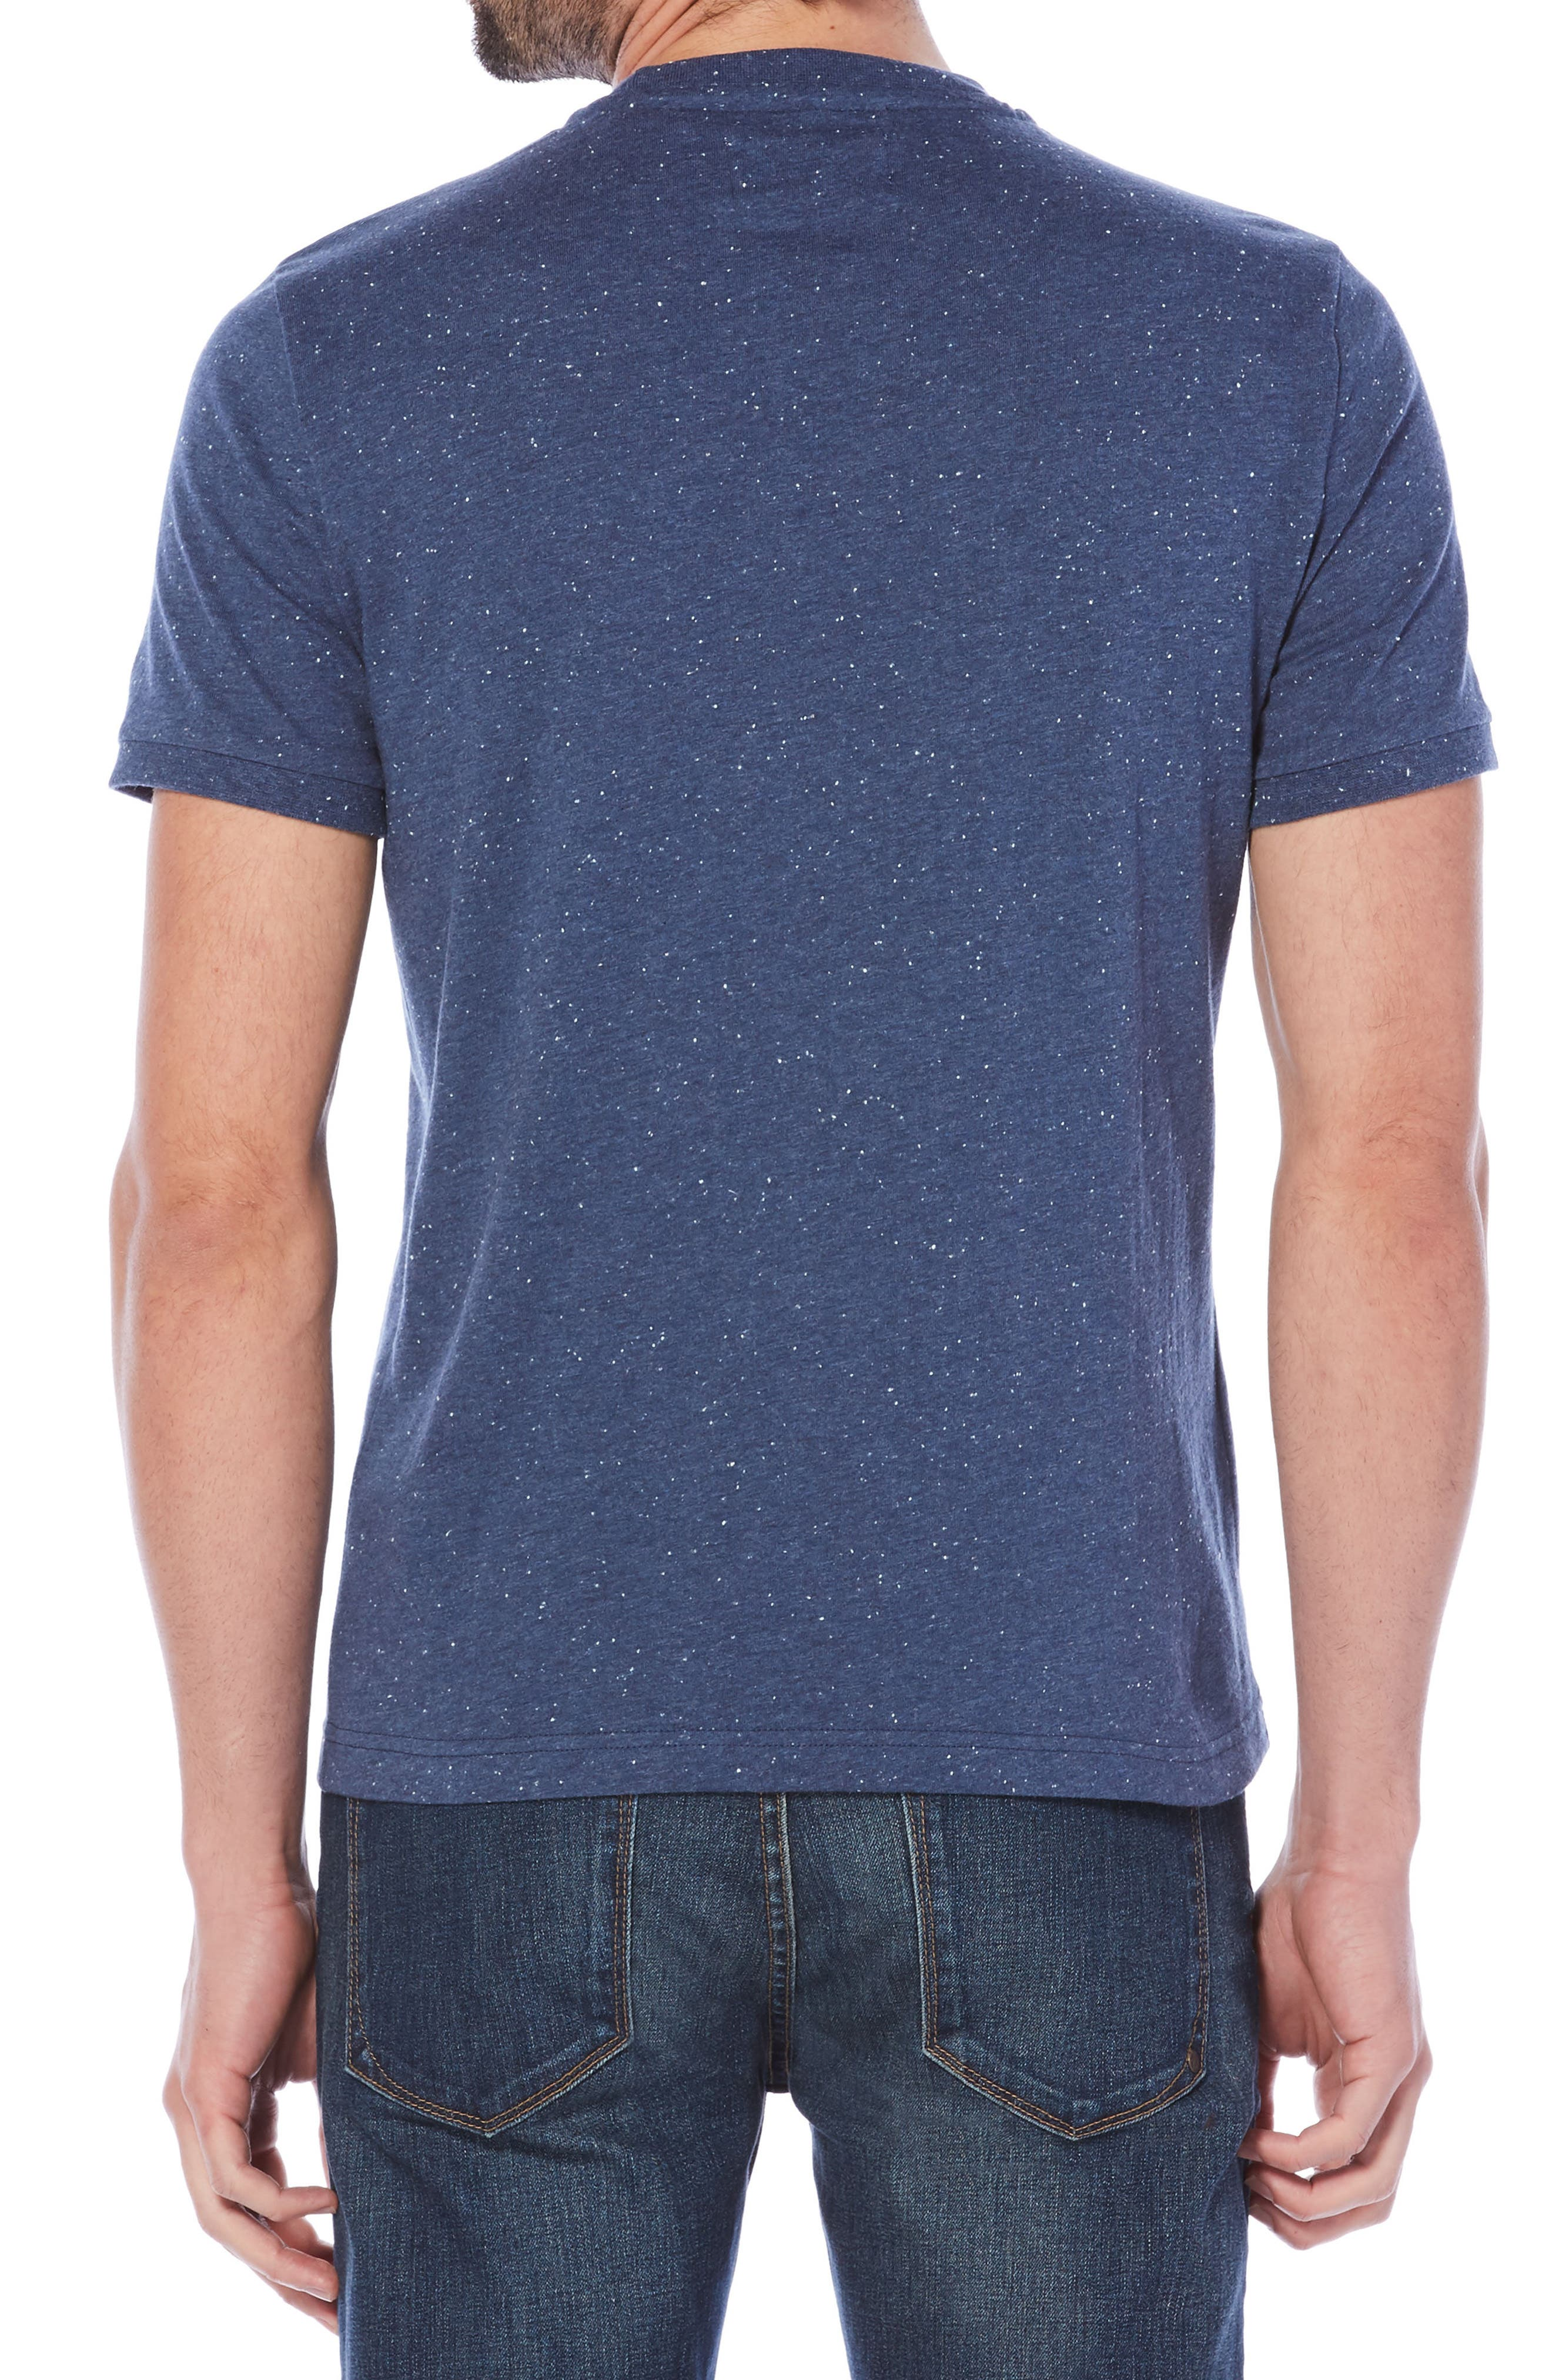 Nep Speckled T-Shirt,                             Alternate thumbnail 5, color,